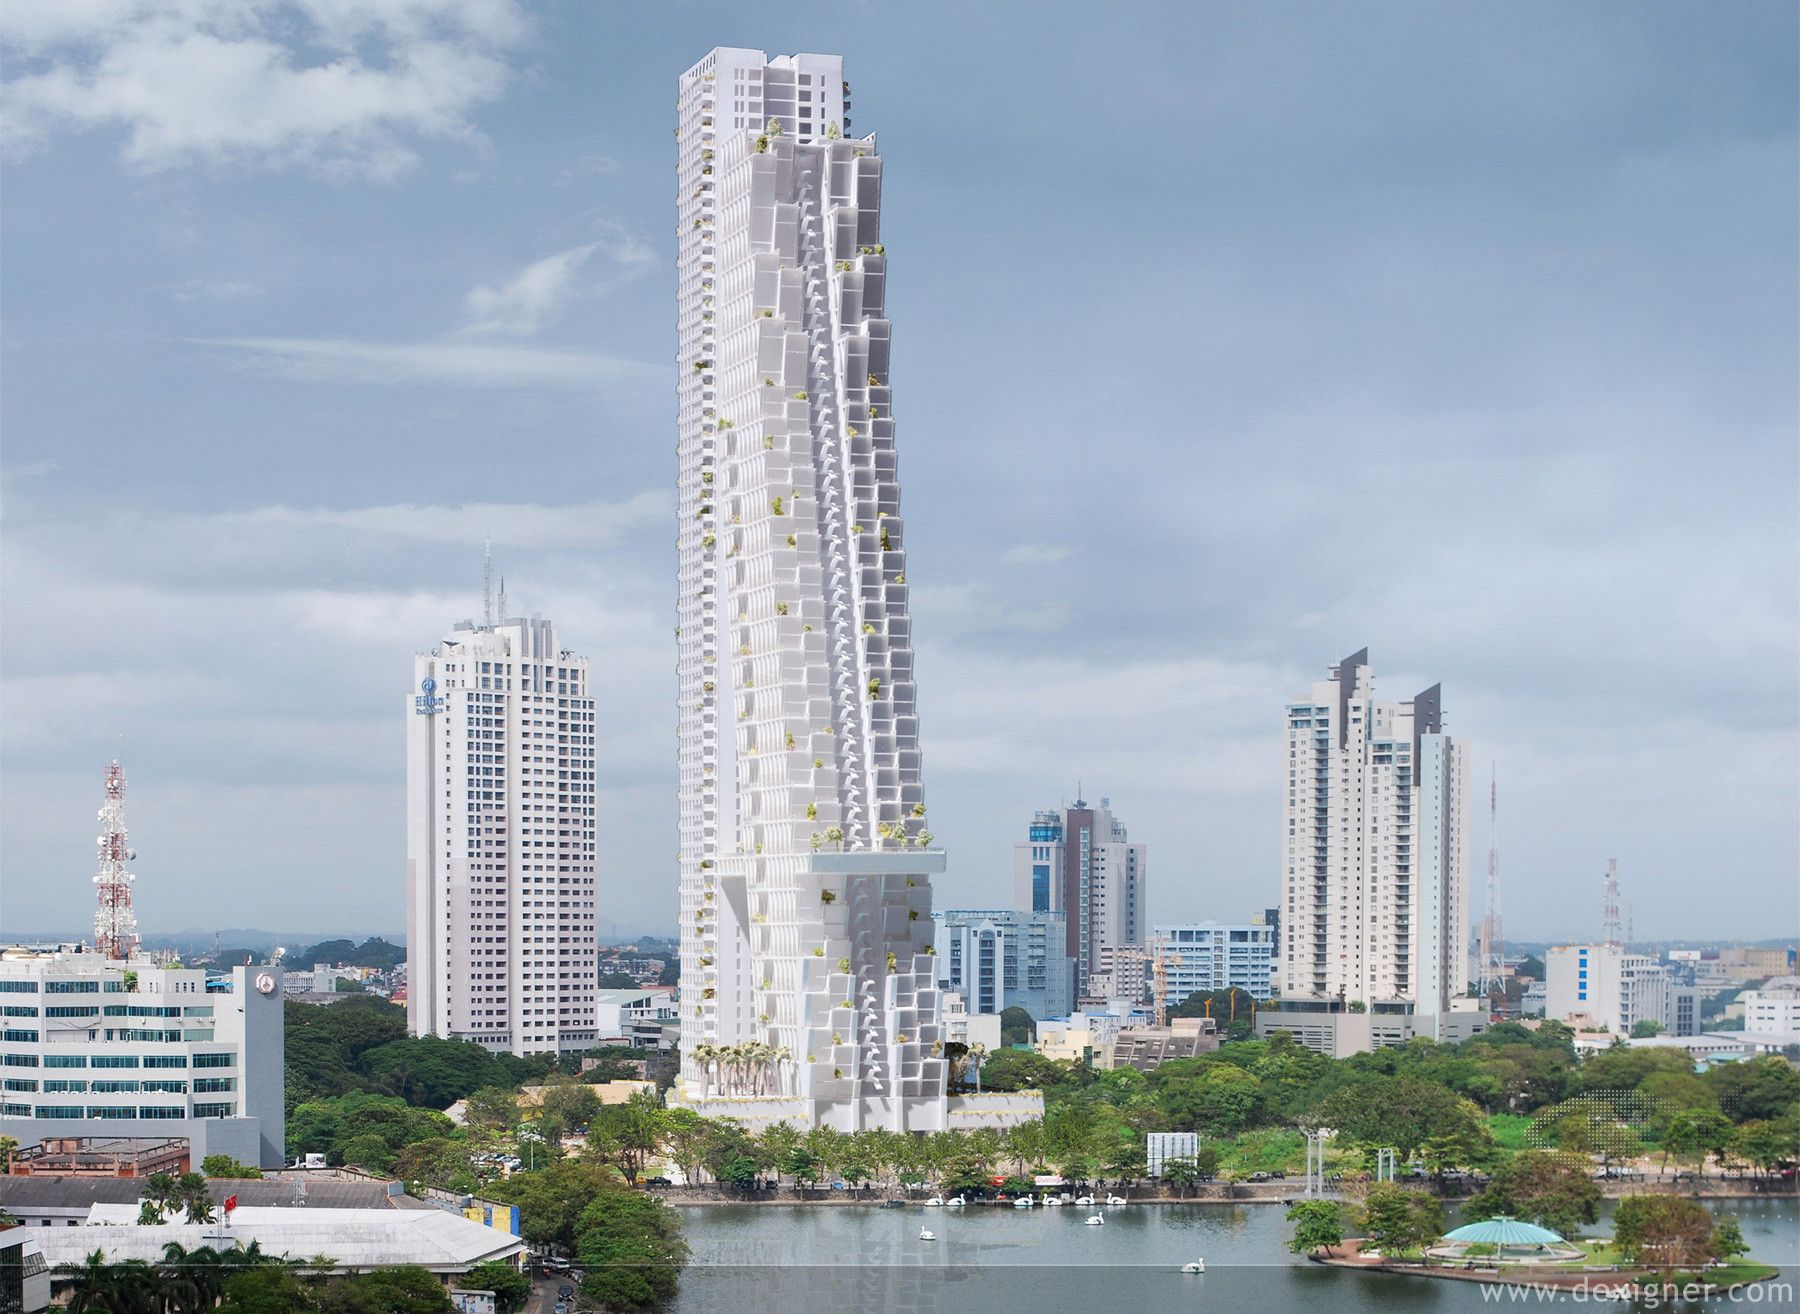 Safdie_Architects_Colombo_Project_01.jpg (1800×1314)